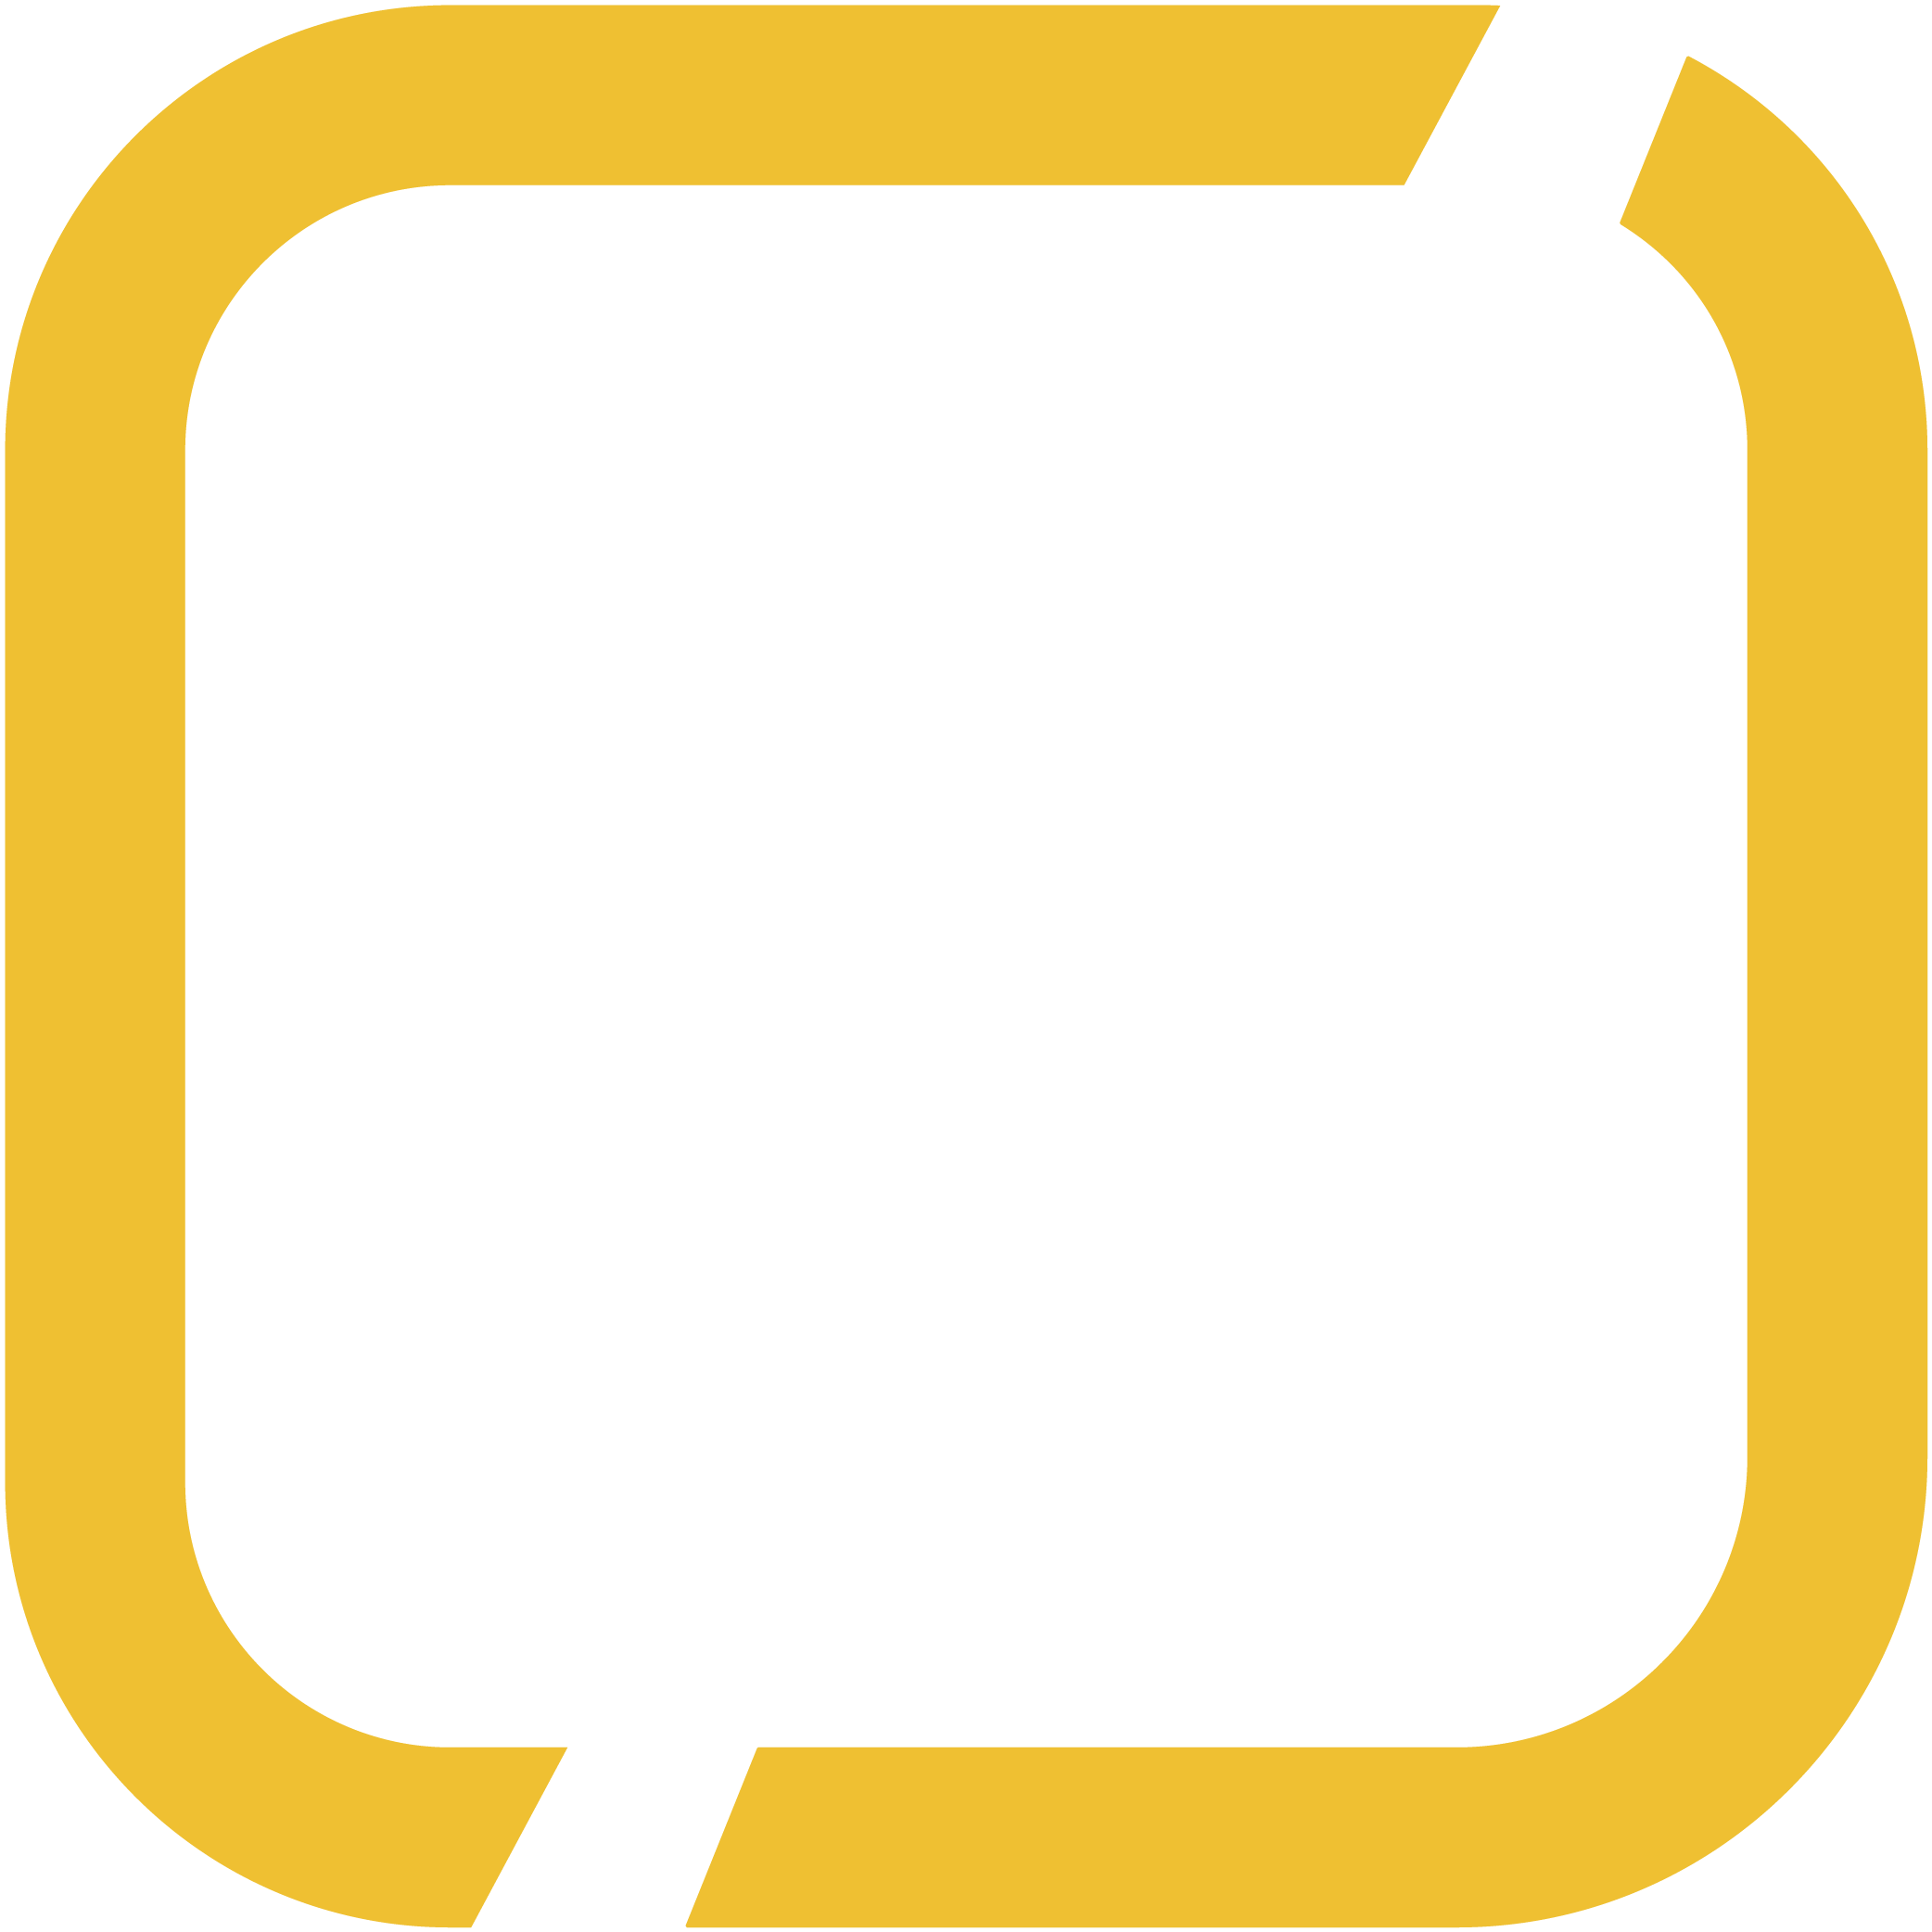 60% prefer not to interact with sales as a primary source